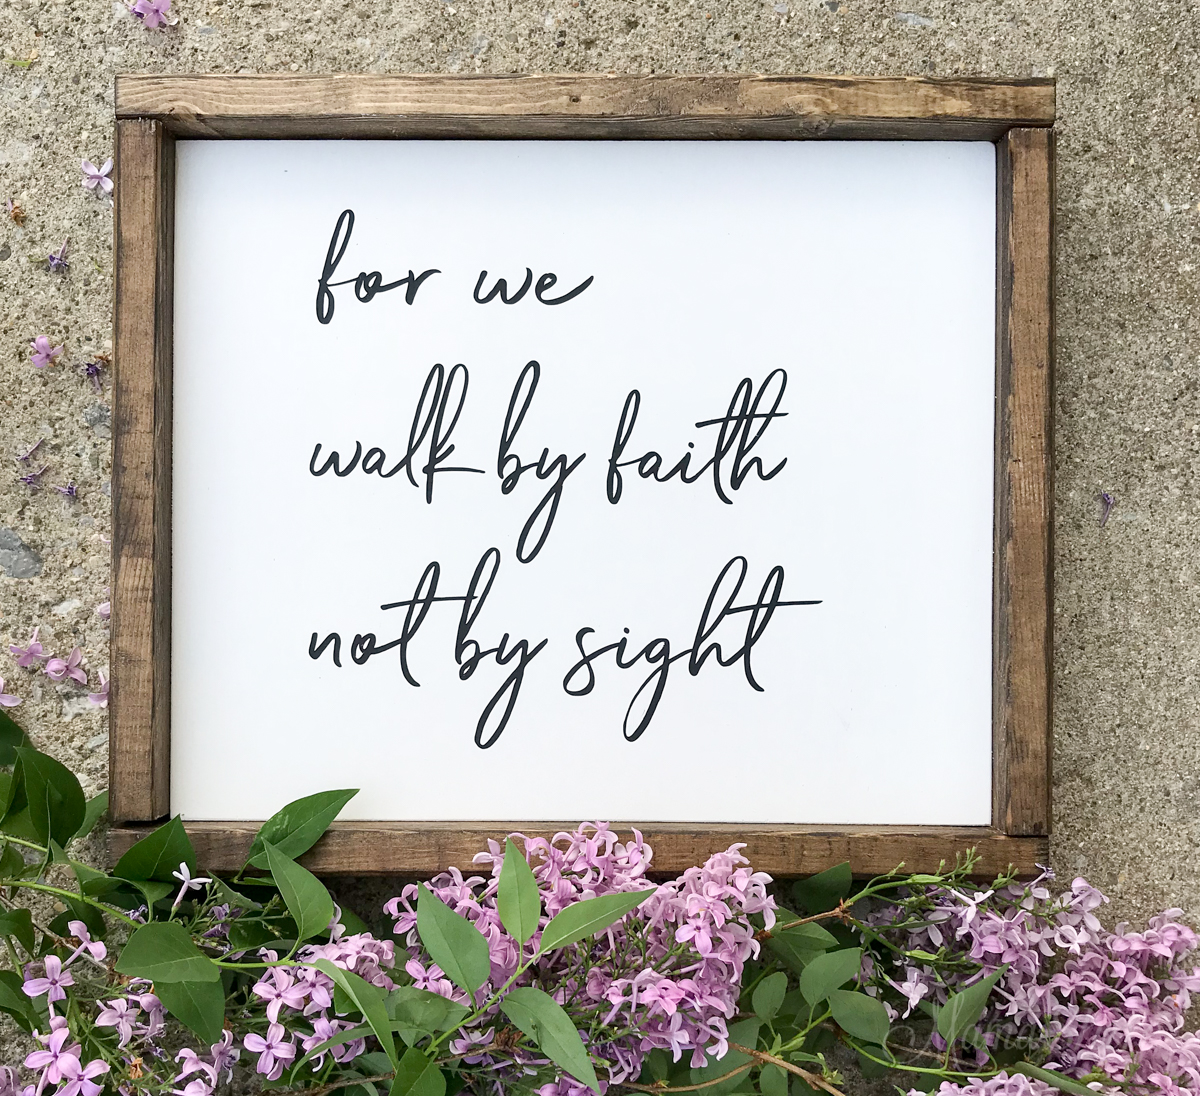 For we walk by faith not by sight. Painted wood sign.